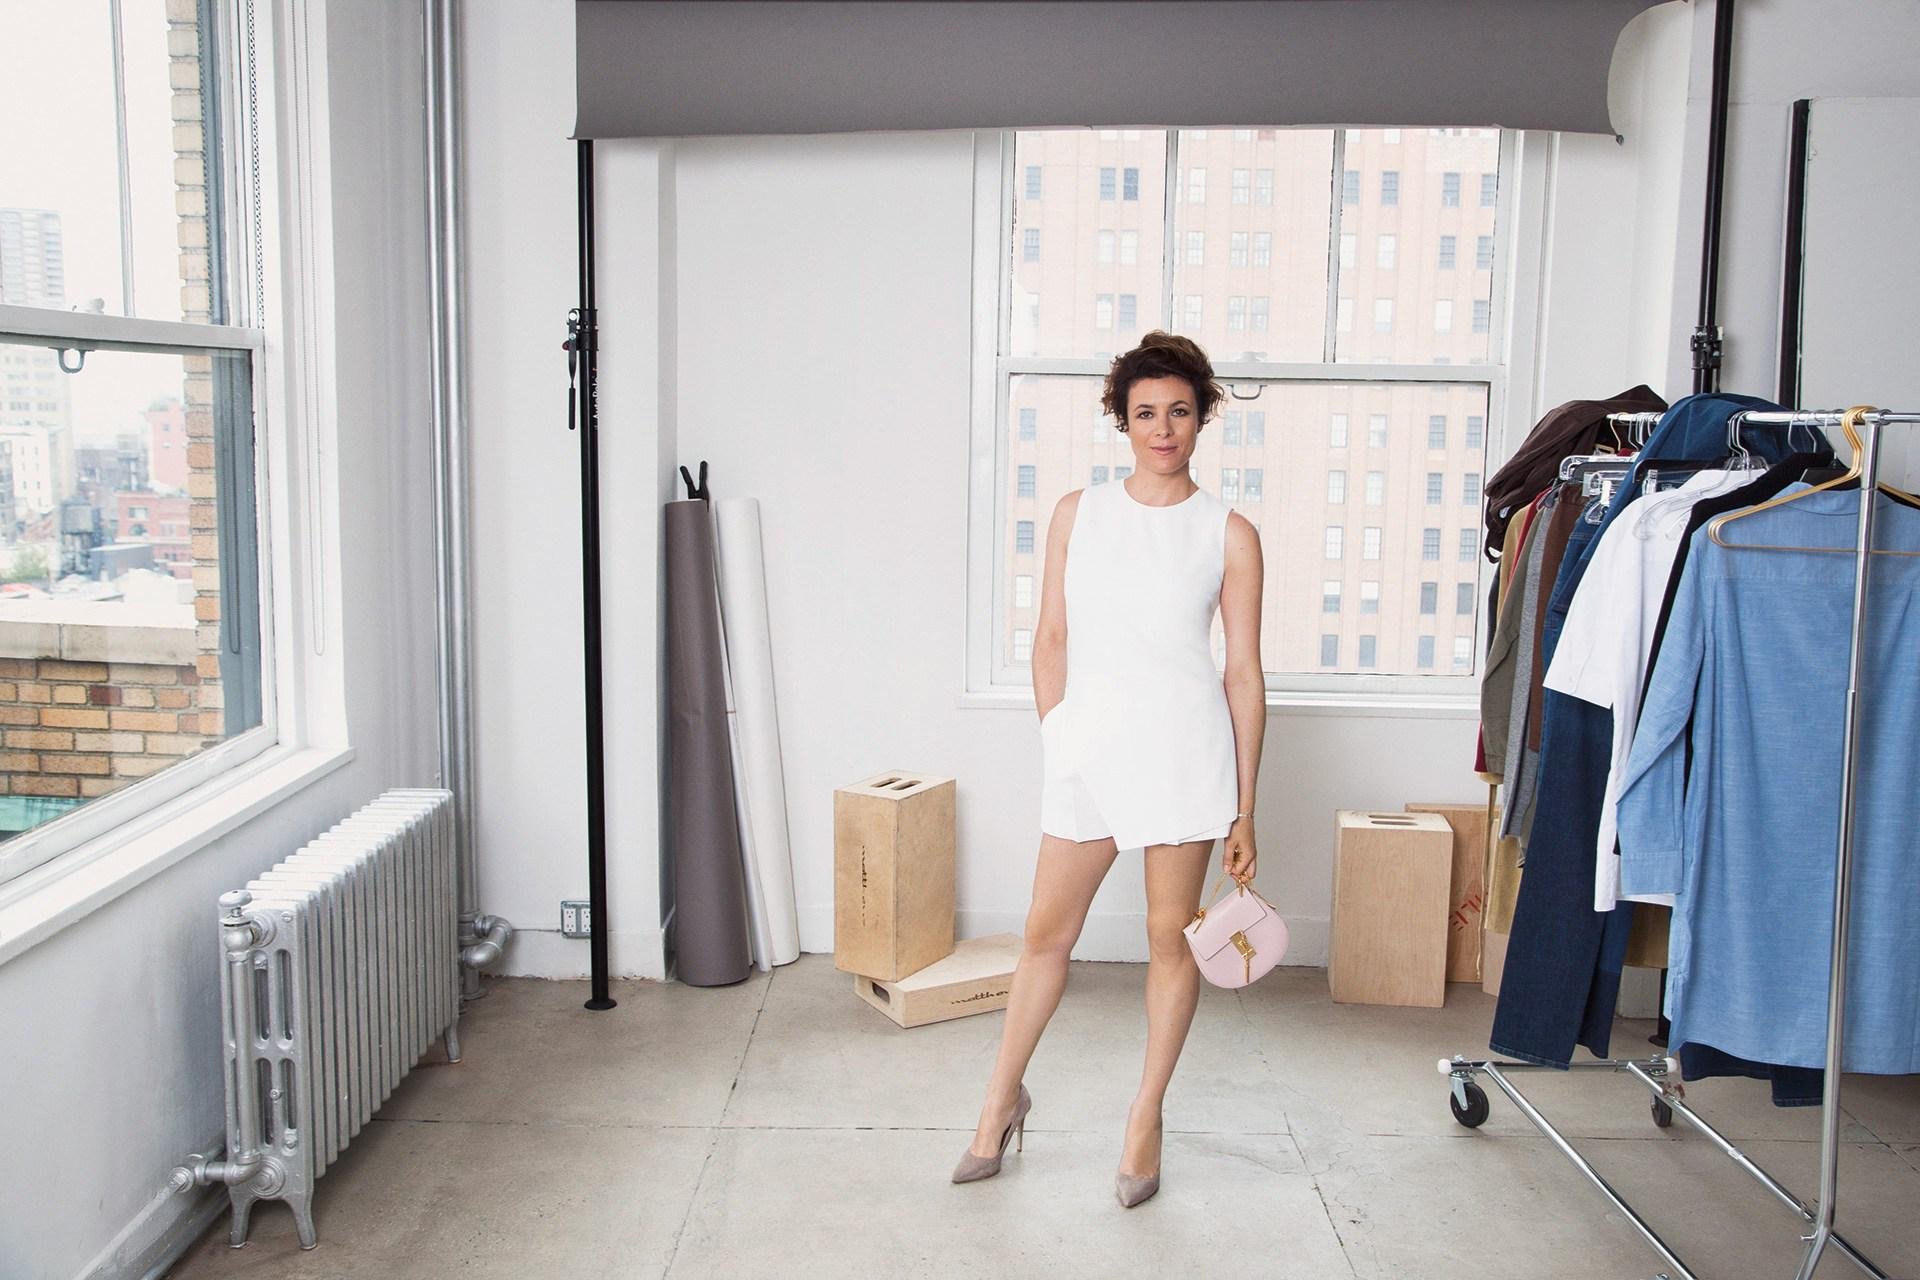 Why Garance is changing direction - http://t.co/MbYH2gIJGB http://t.co/mHdGeofQU4